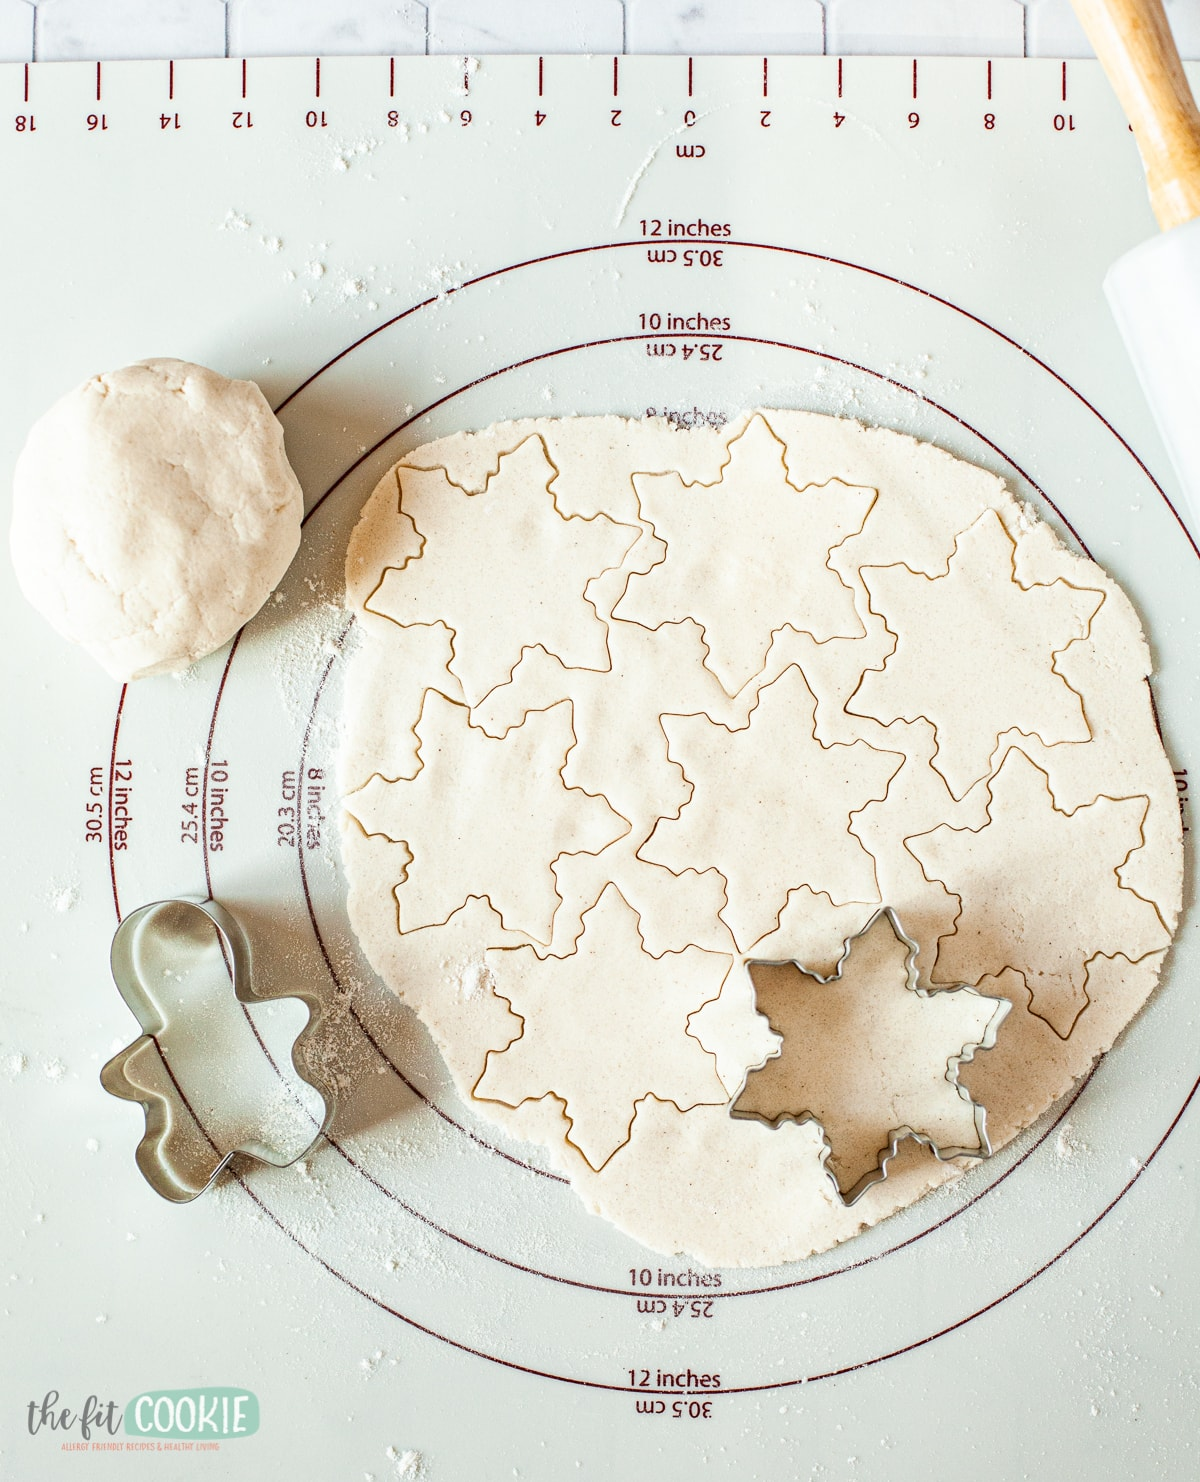 cookie dough on pastry mat with cookie cutters